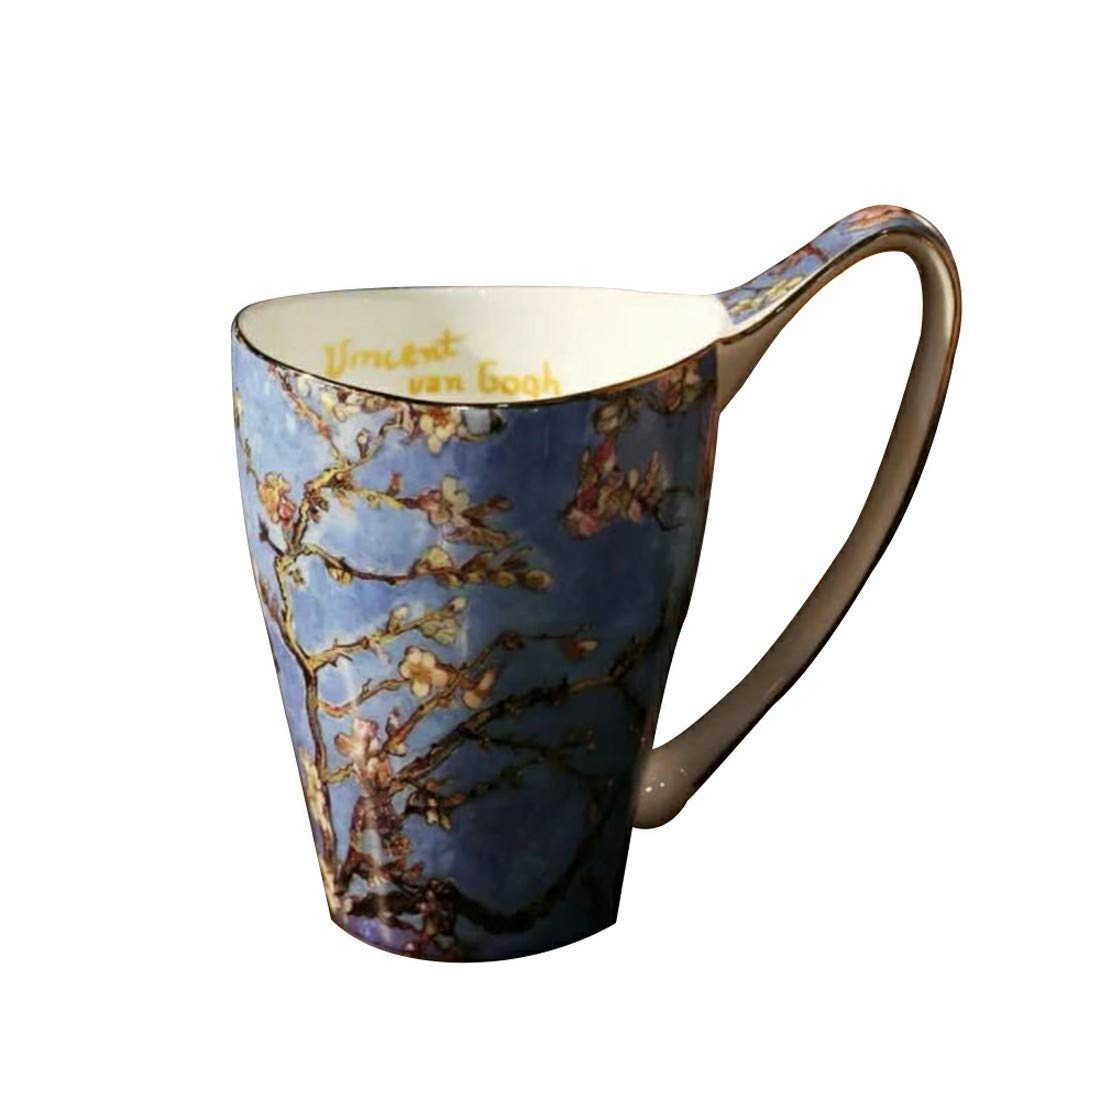 Black Friday Deals Cyber Monday Deals Sale-20 oz Famous Painting Masterpiece Artwork Van Gogh Art Ceramics Mugs, Large Capacity Funny Coffee Cups Fashion Breakfast Beer Milk Mug (Blue C)